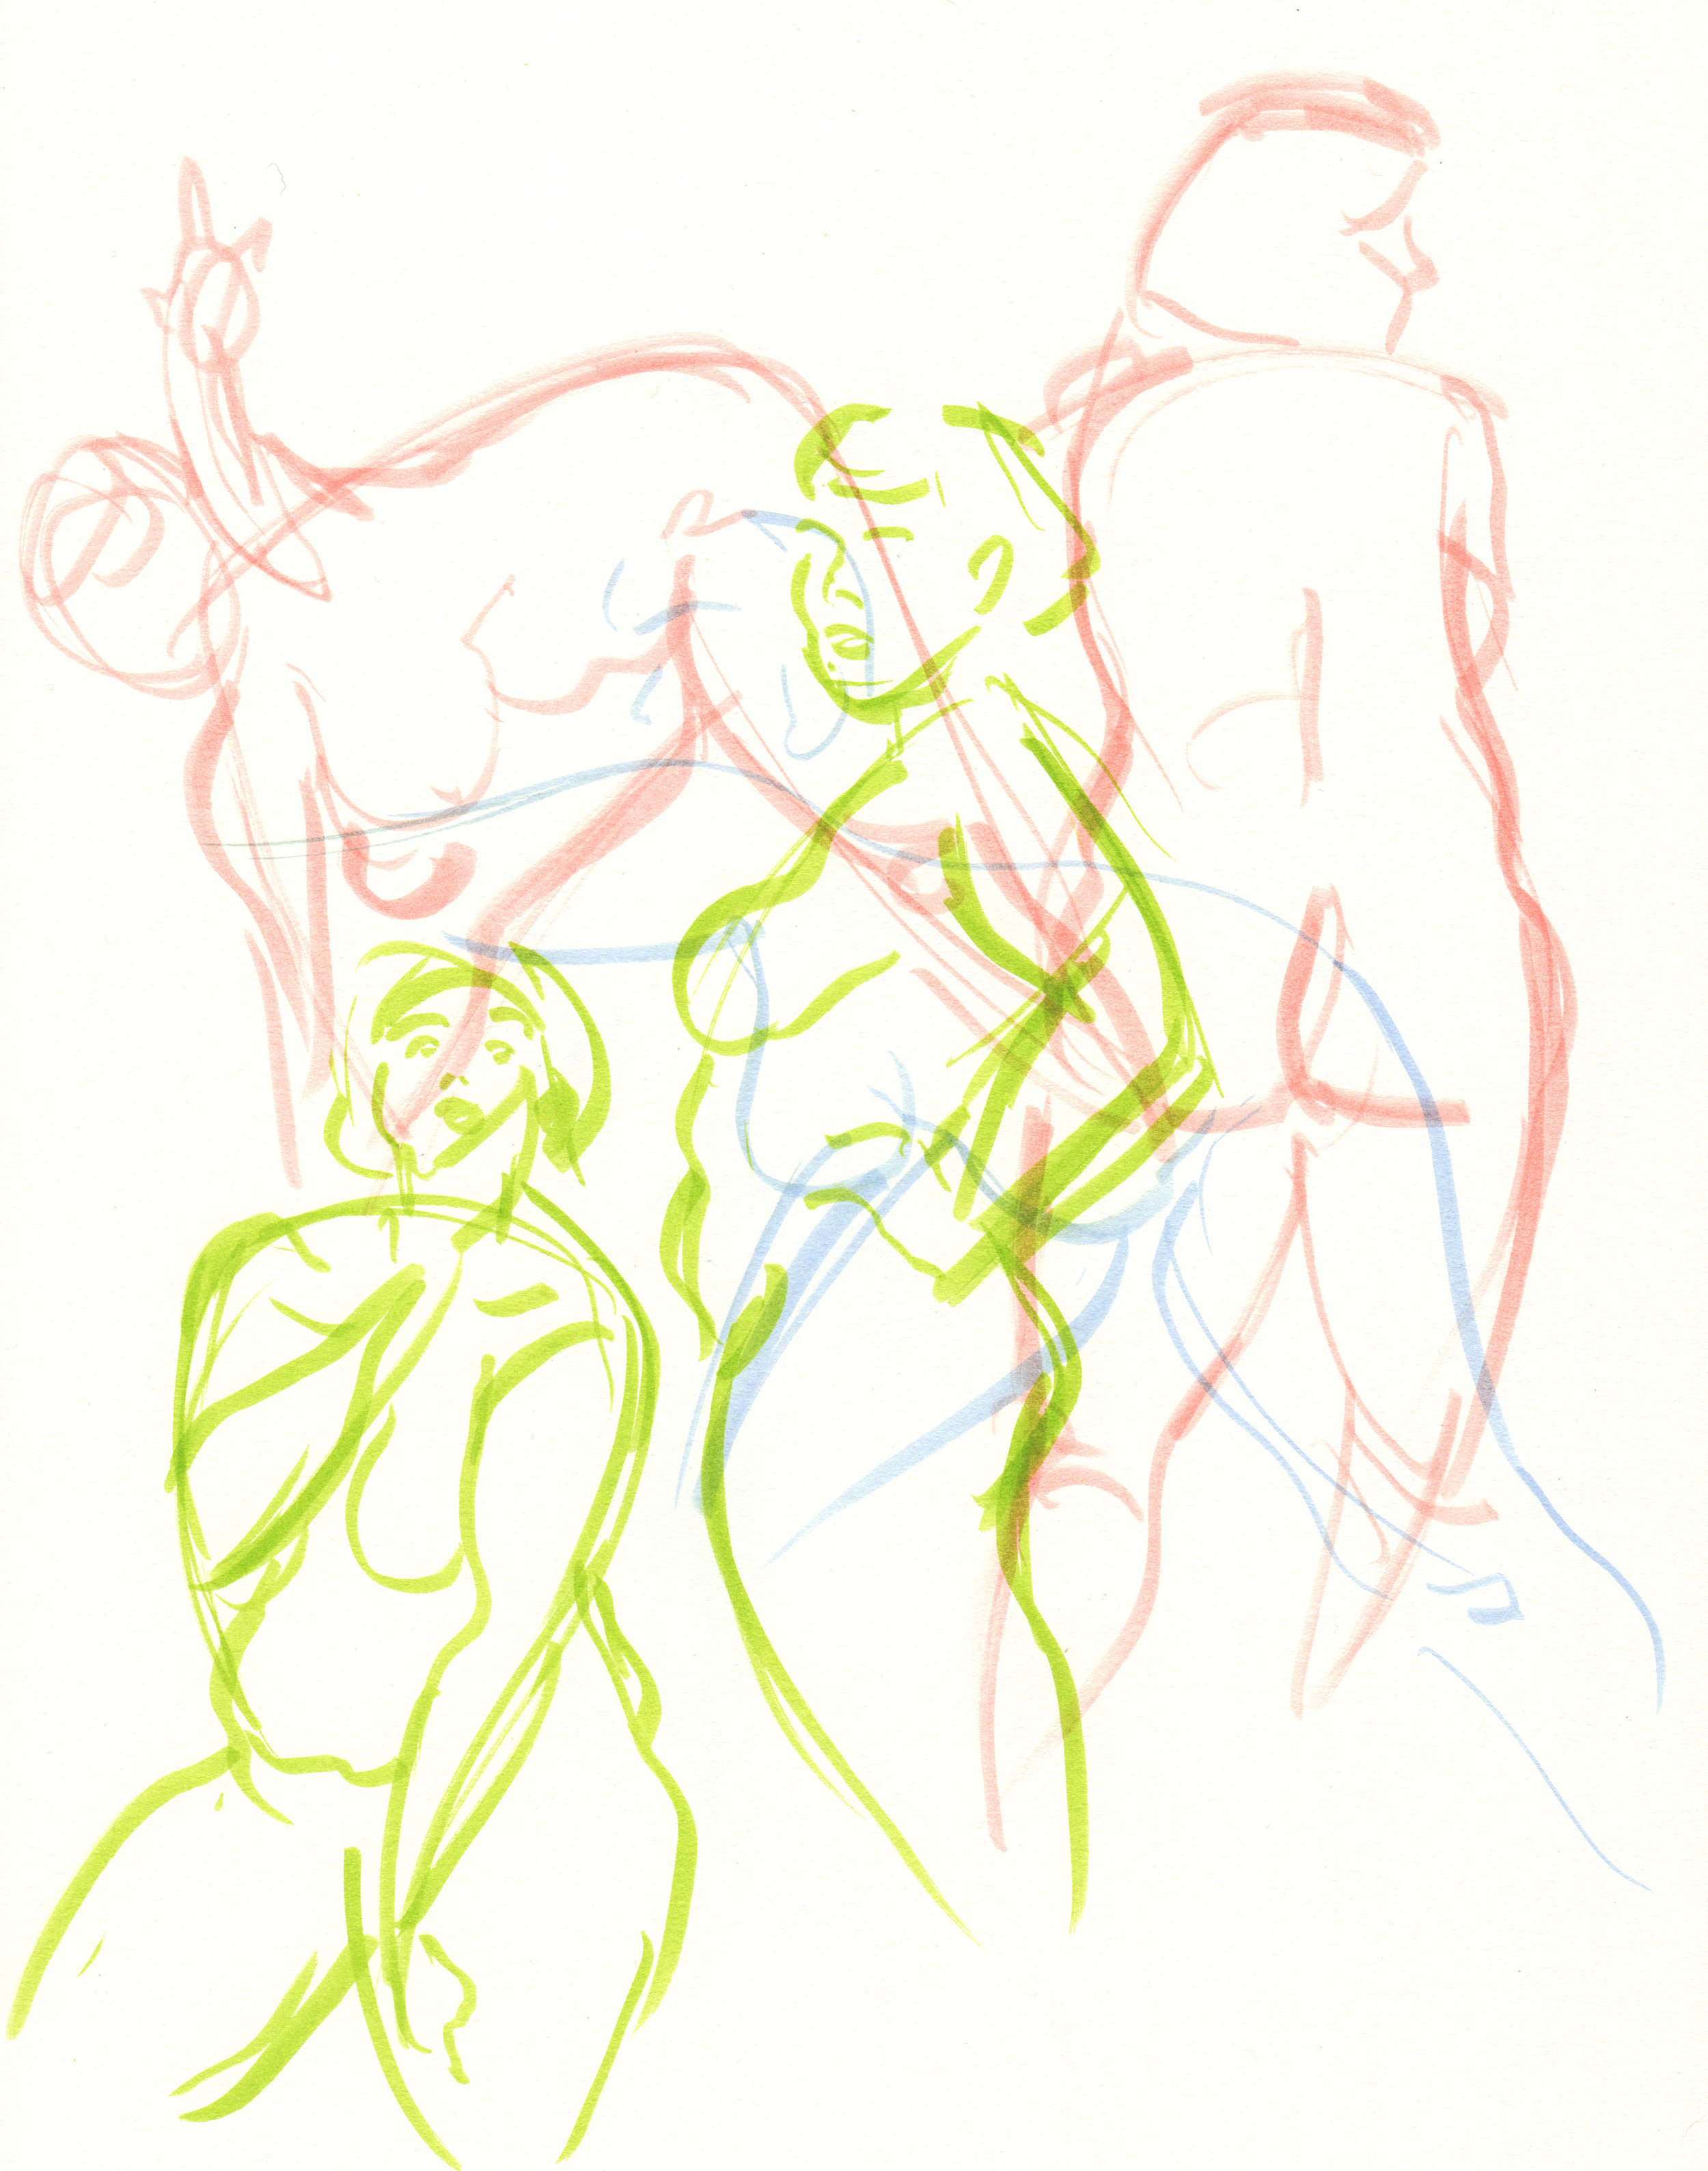 Figure drawing, 1 minute poses, 2019